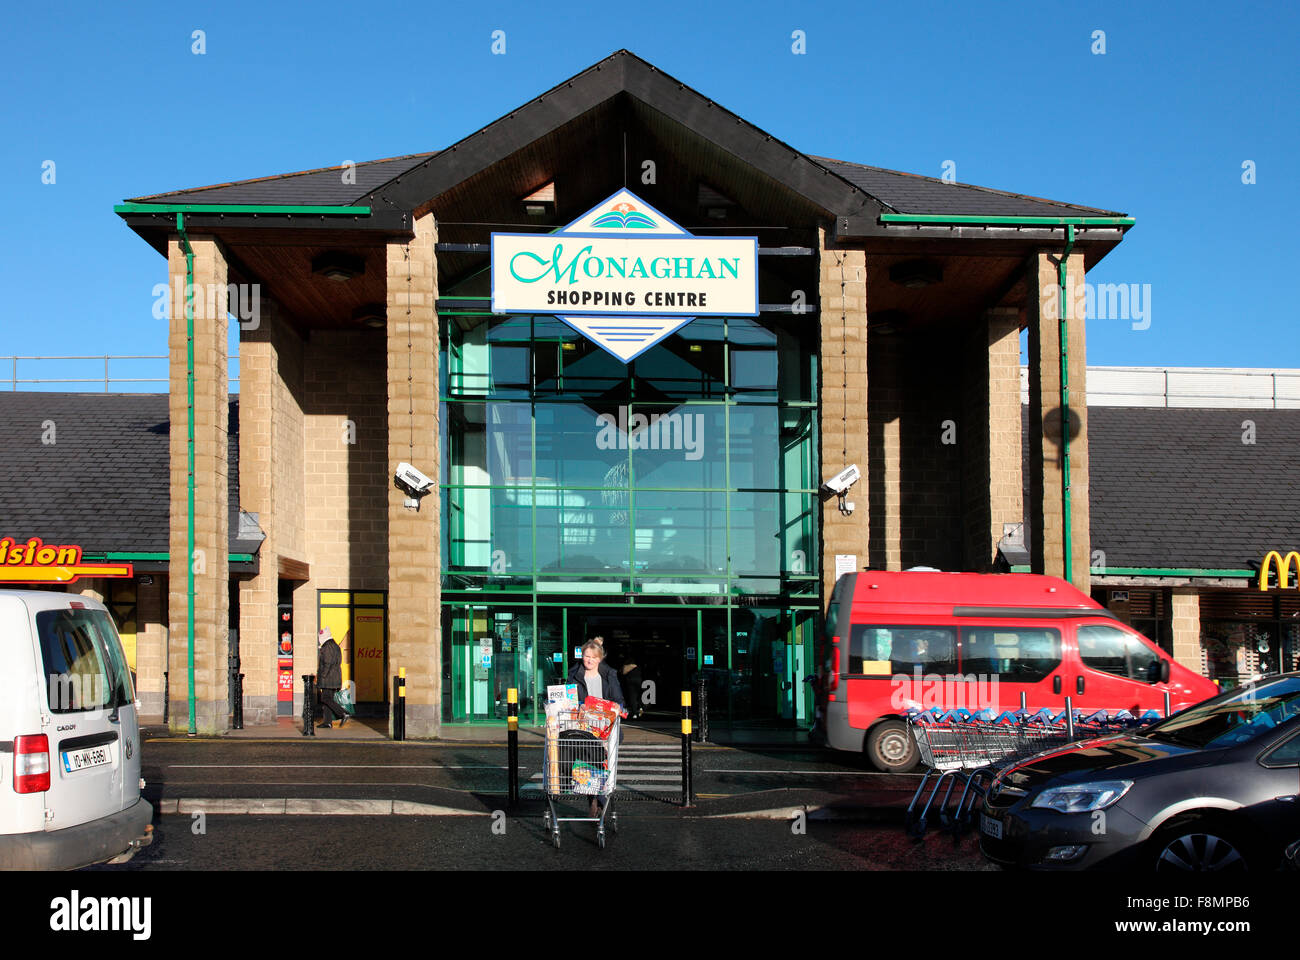 Monaghan Shopping Centre, Ireland - Stock Image